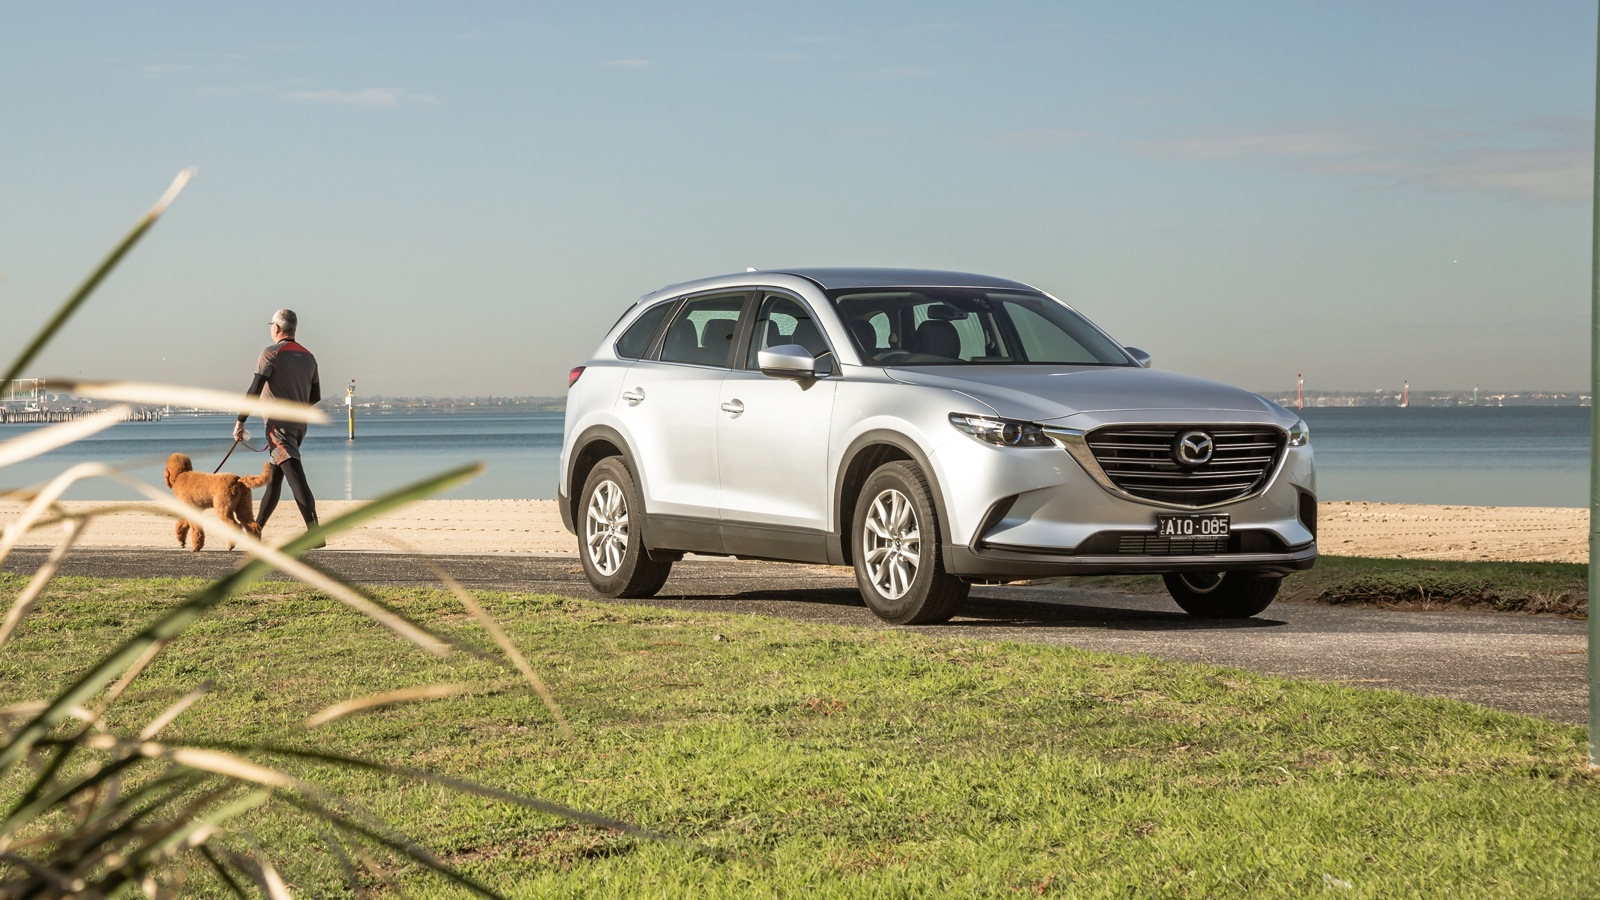 2017 mazda 3 reviews ratings prices consumer reports. Black Bedroom Furniture Sets. Home Design Ideas